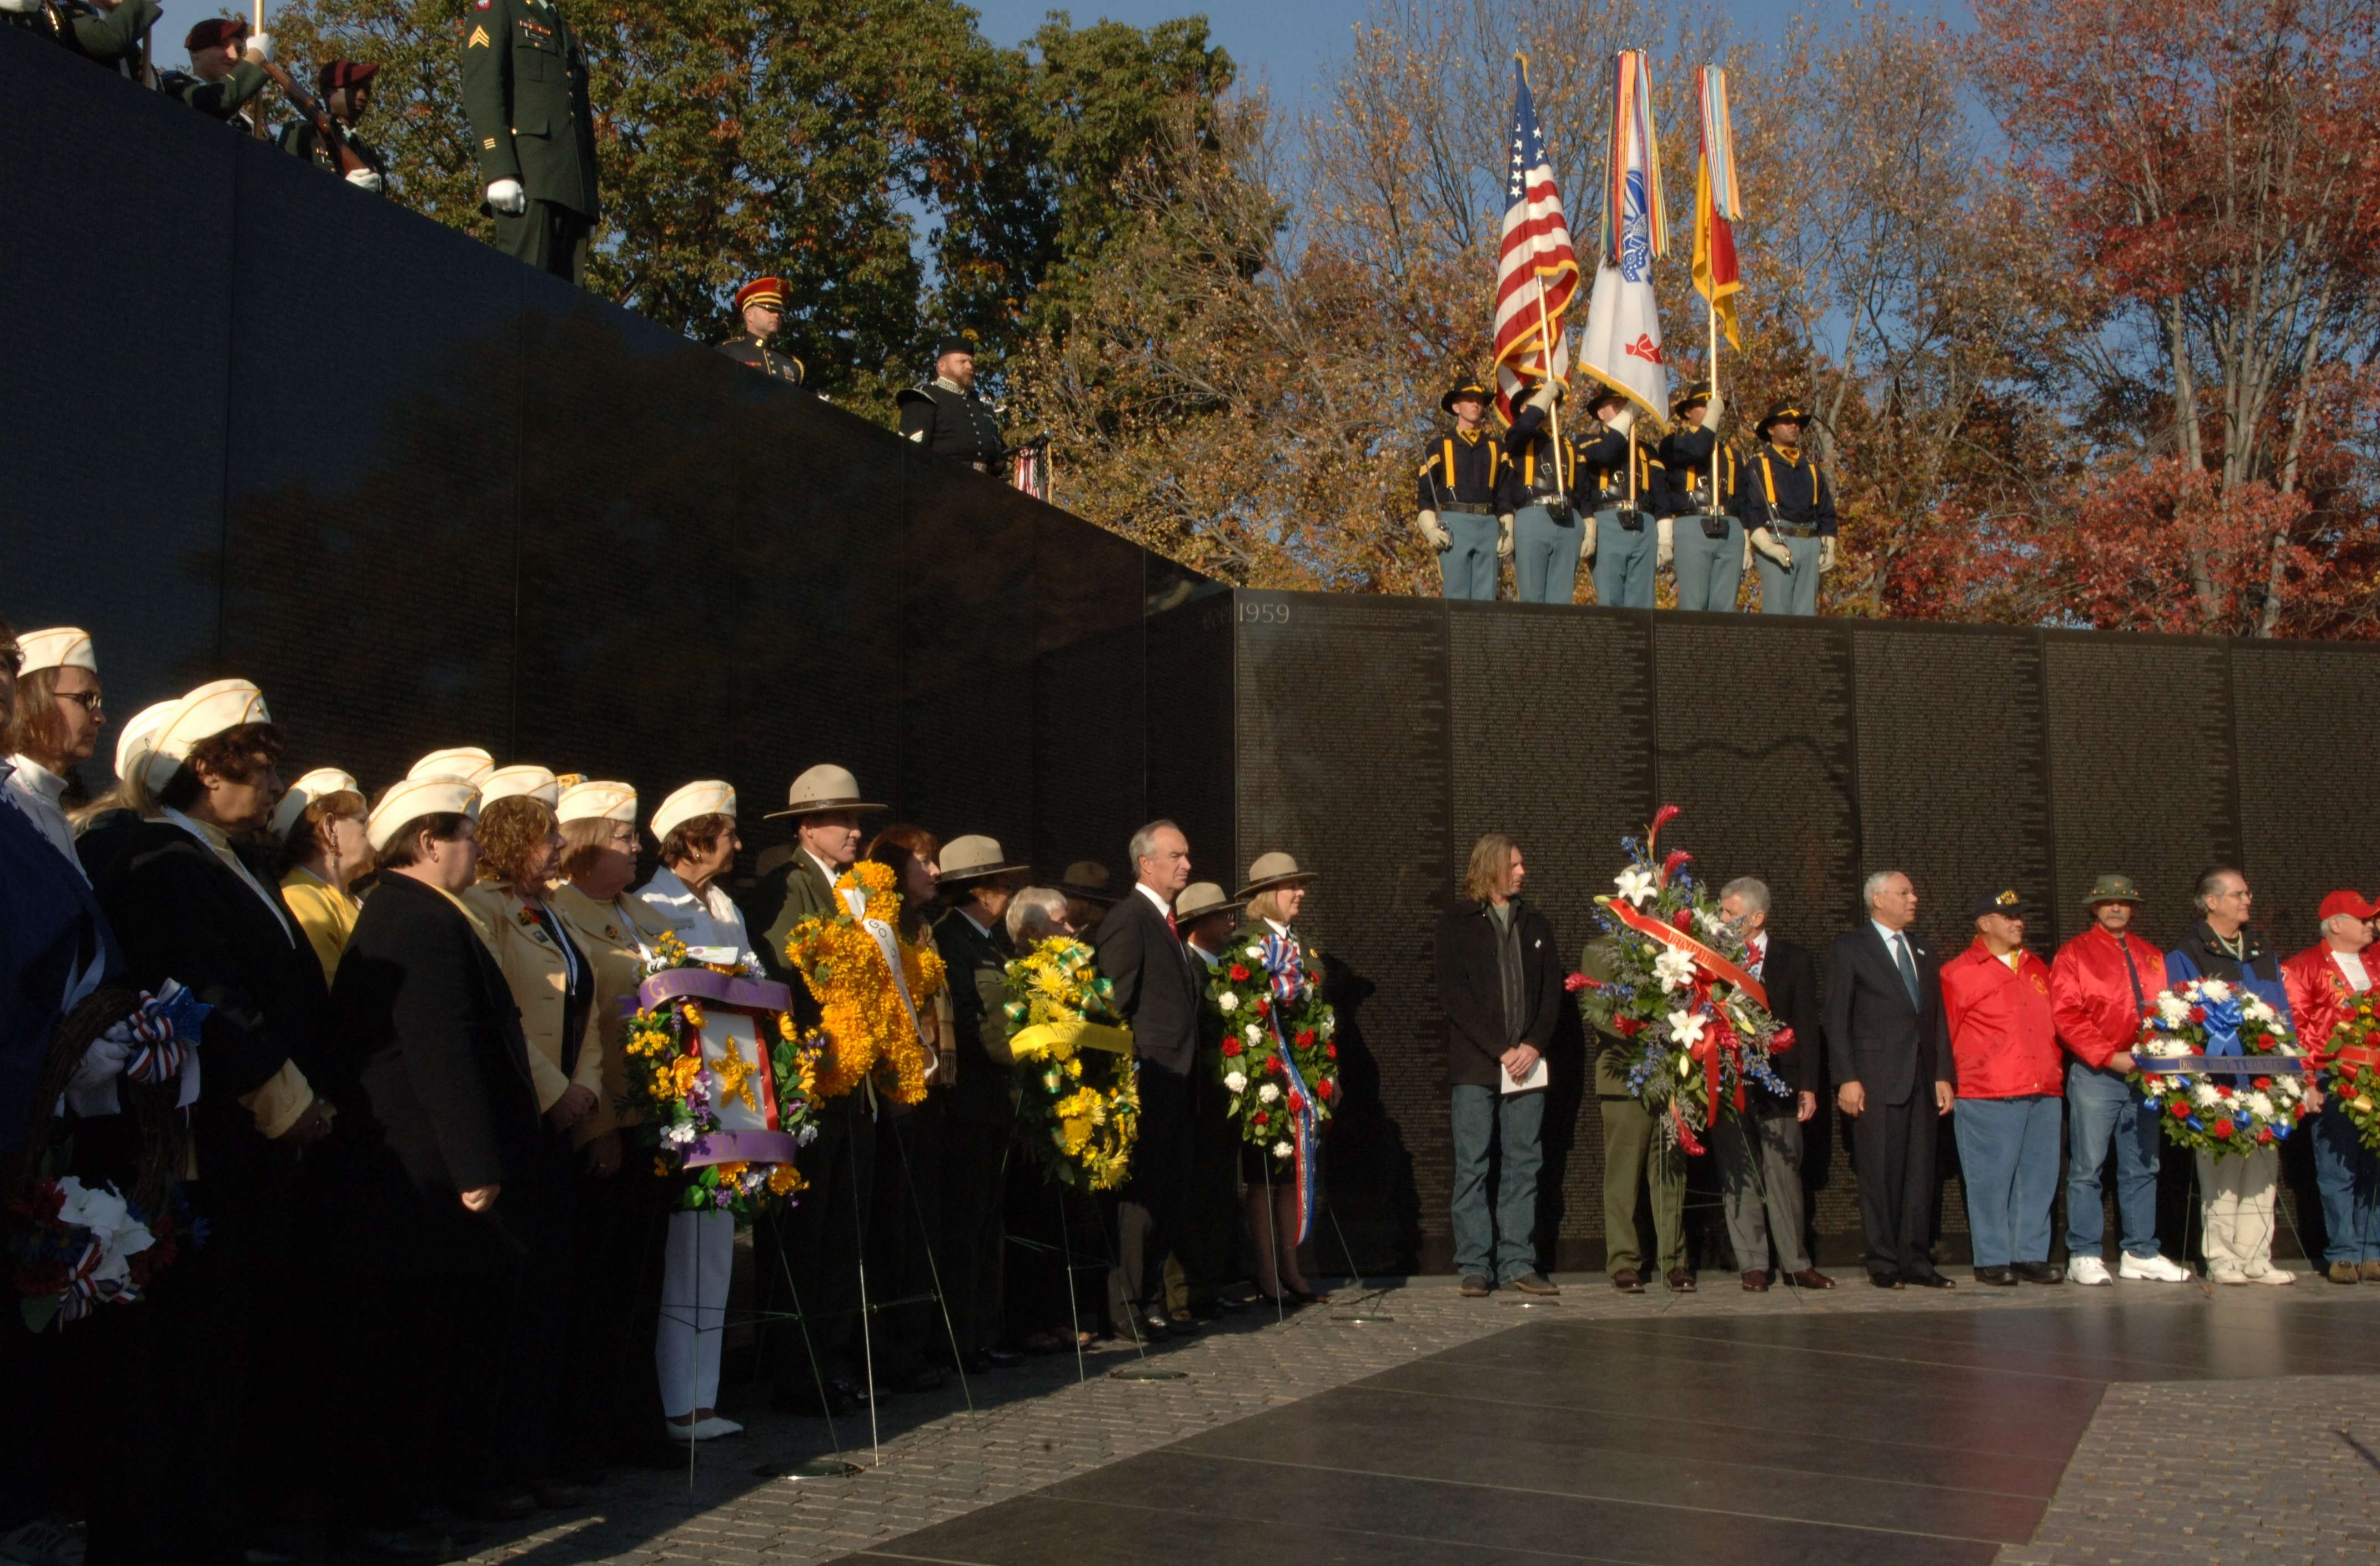 Veterans Day Ceremony at the Vietnam Veterans Memorial